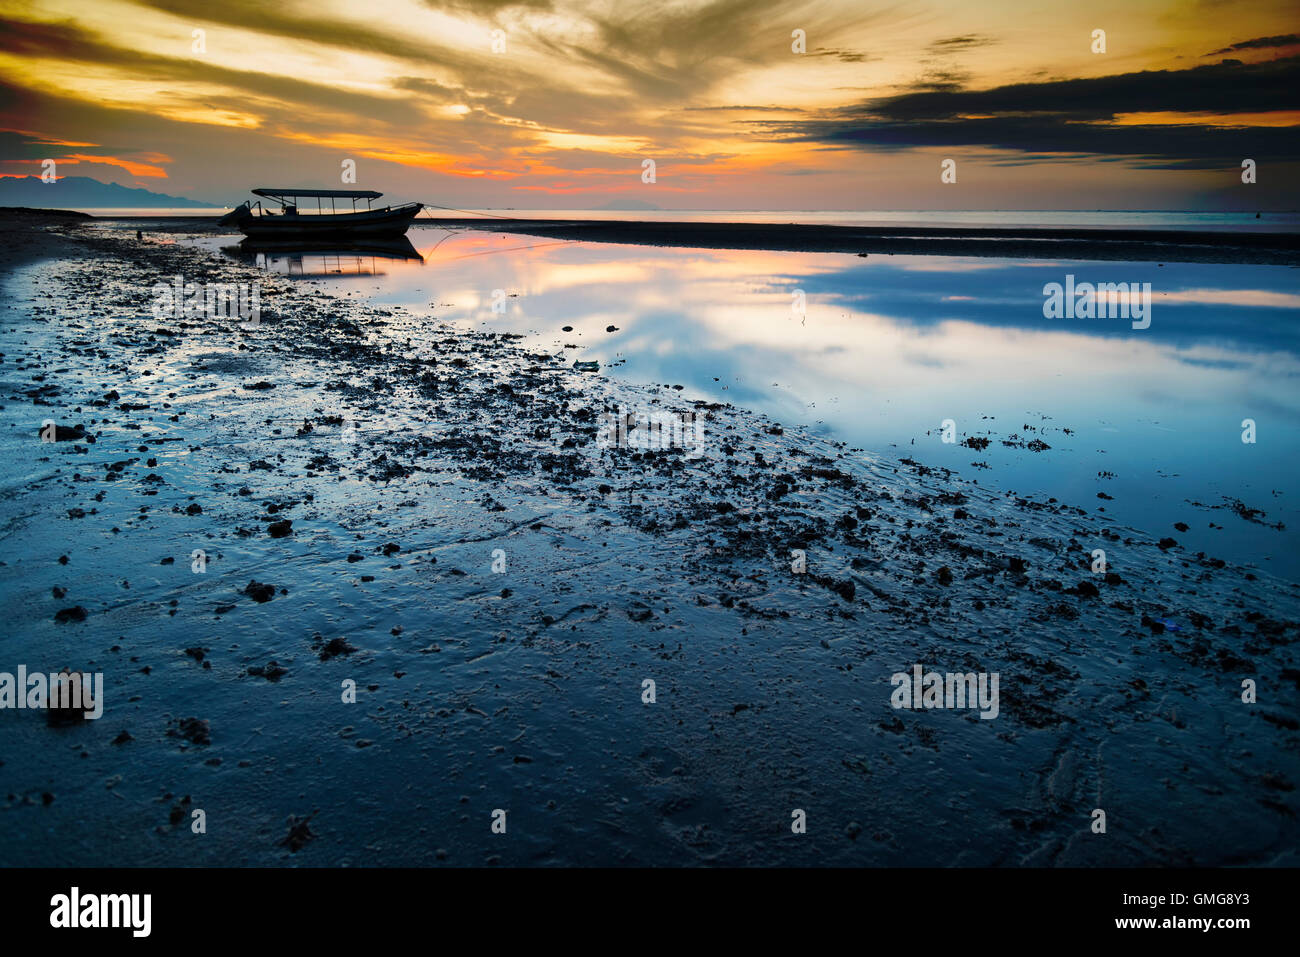 Colorful sunset with old fisherman boat, Java, Indonesia - Stock Image